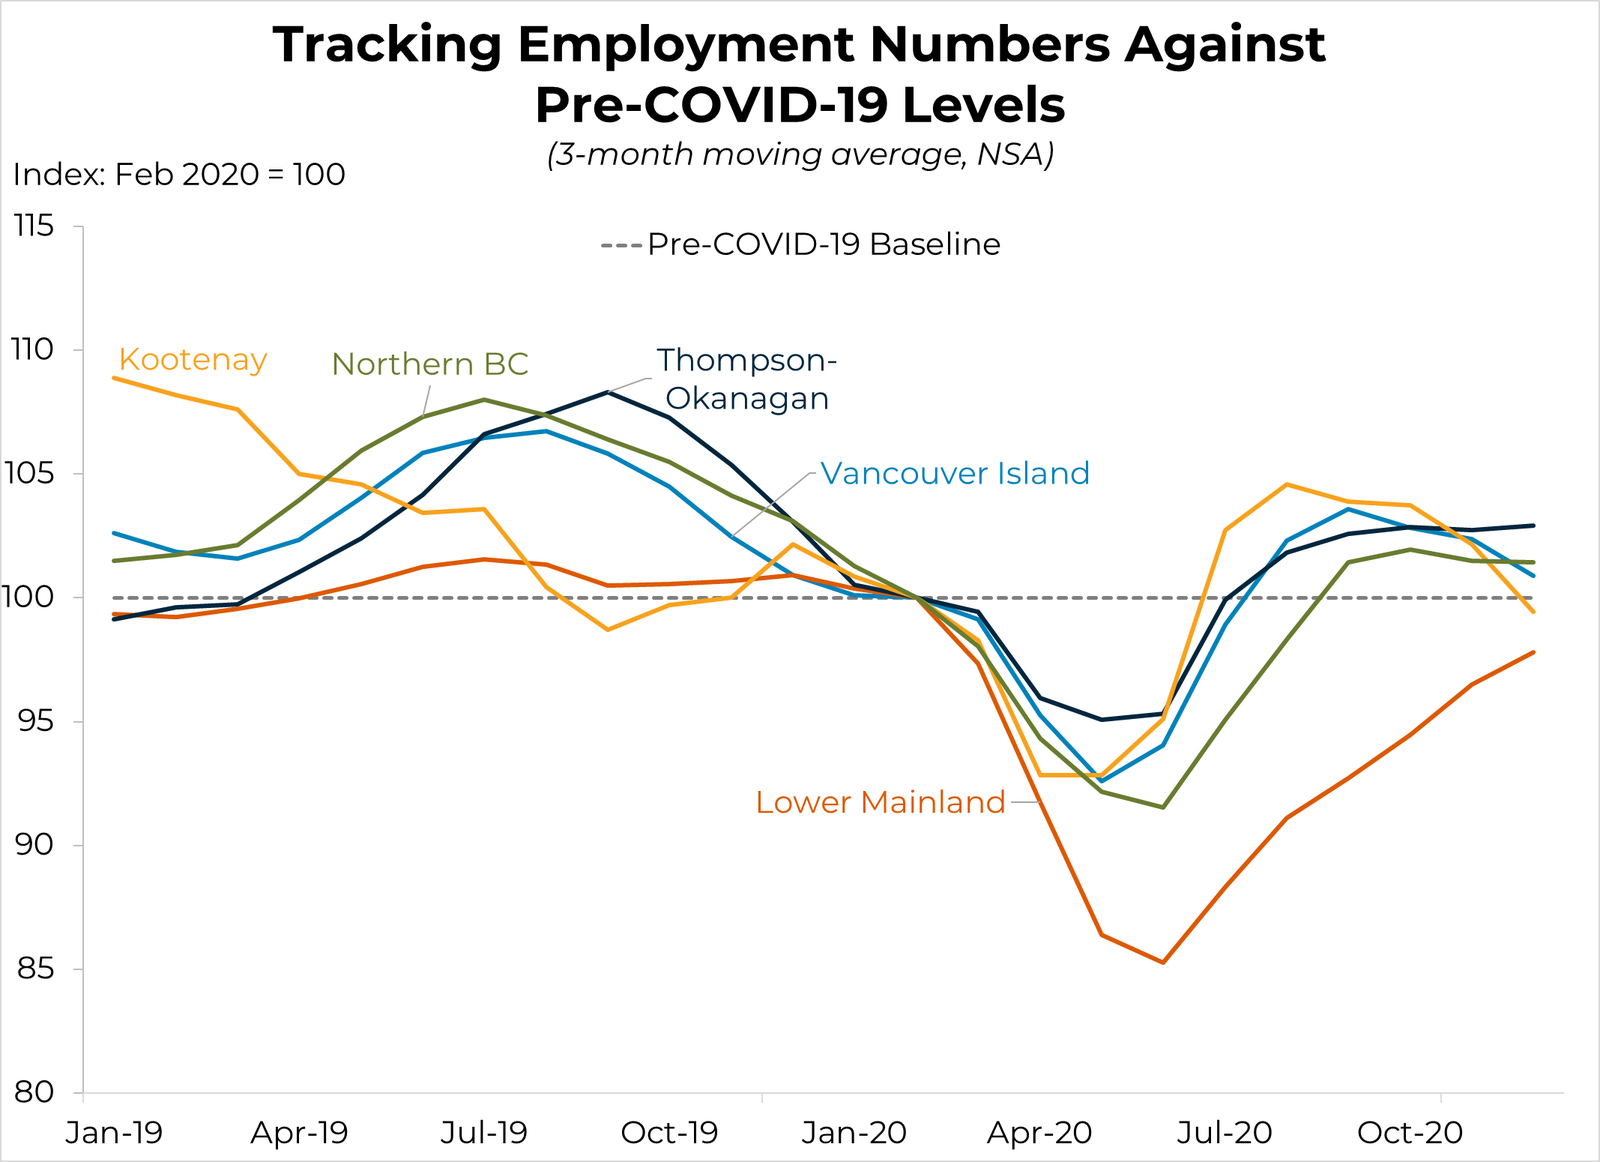 Tracking Employment Levels Against COVID